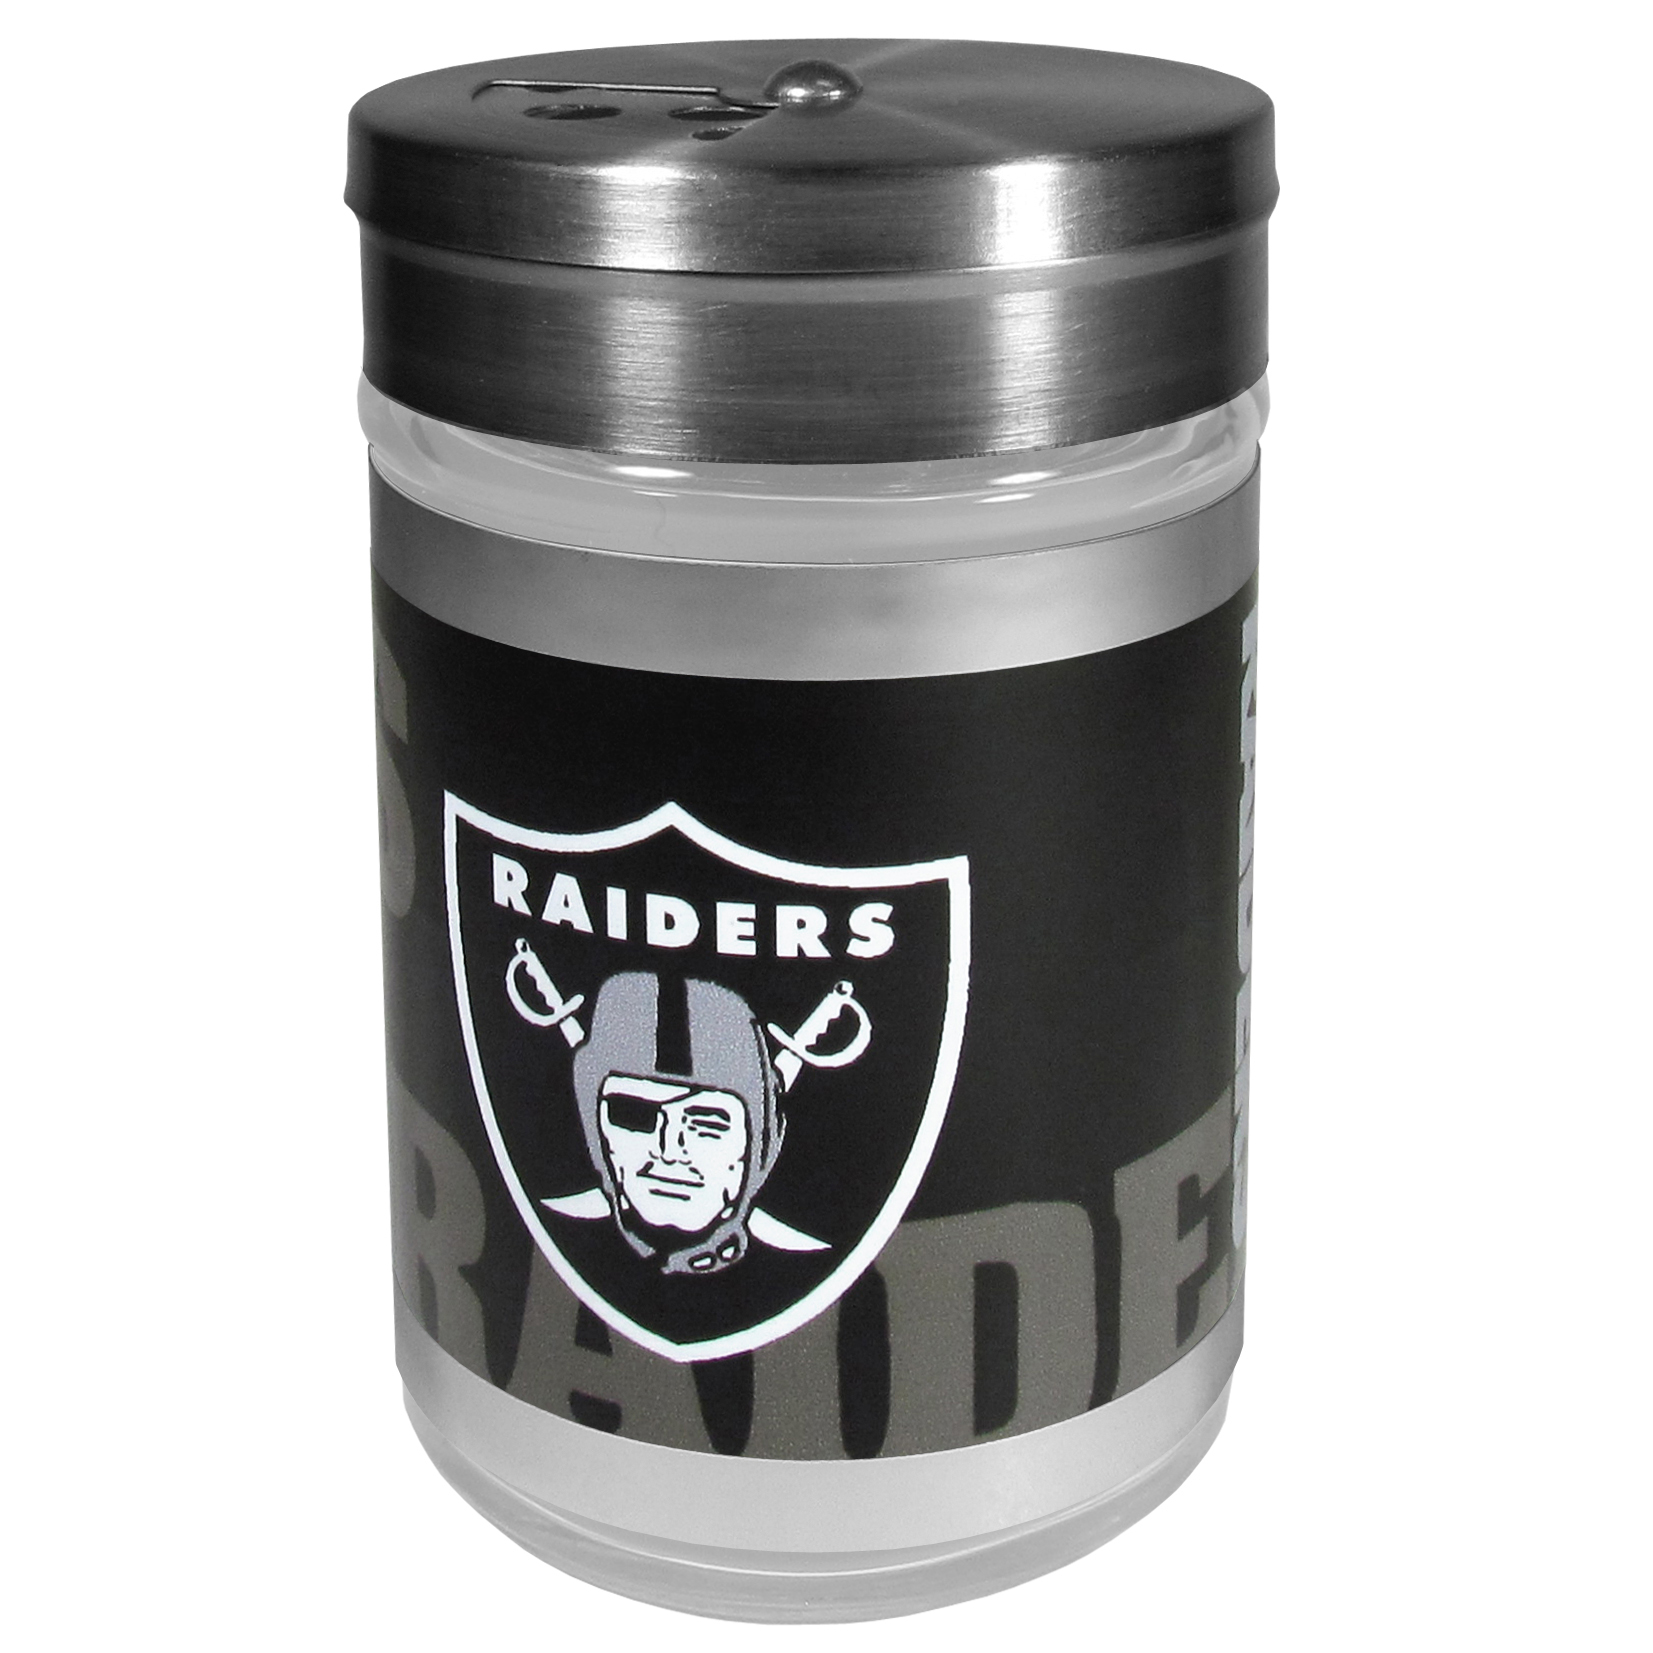 Oakland Raiders Tailgater Season Shakers - Spice it up with our Oakland Raiders tailgater season shakers! This compact shaker is 2 inch tall with a twist top that closes off the holes at the top making it perfect for travel preventing those messy spills. The shaker has wide holes perfect for keeping your pepper seeds or cheese toppings. The bright team graphics will make you the envy of the other fans while you are grilling up your tailgating goodies.